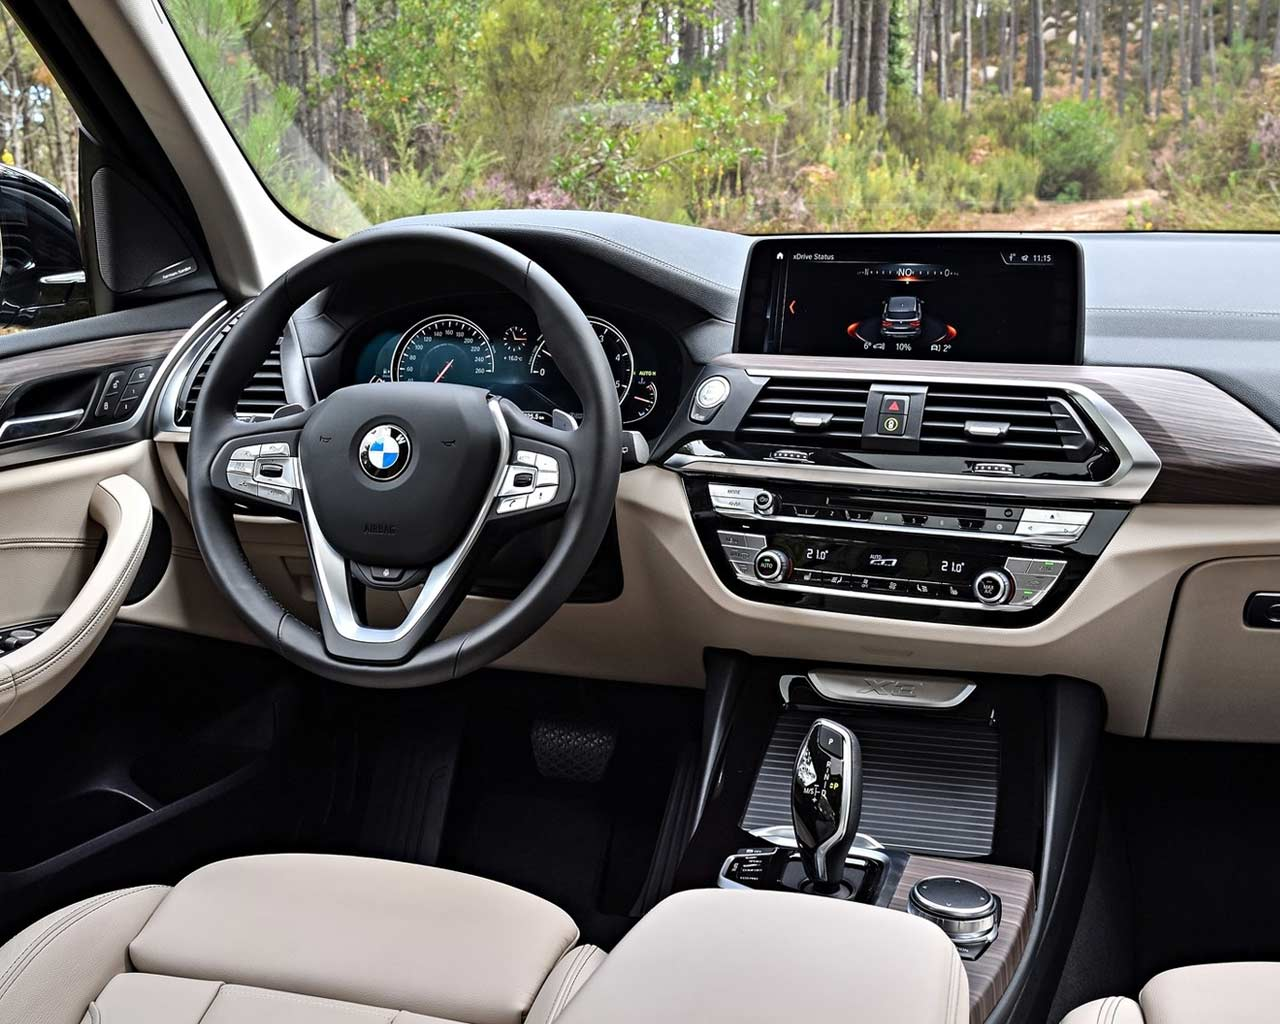 2018 Bmw X3 Priced From Inr 49 99 Lakh In India Autobics